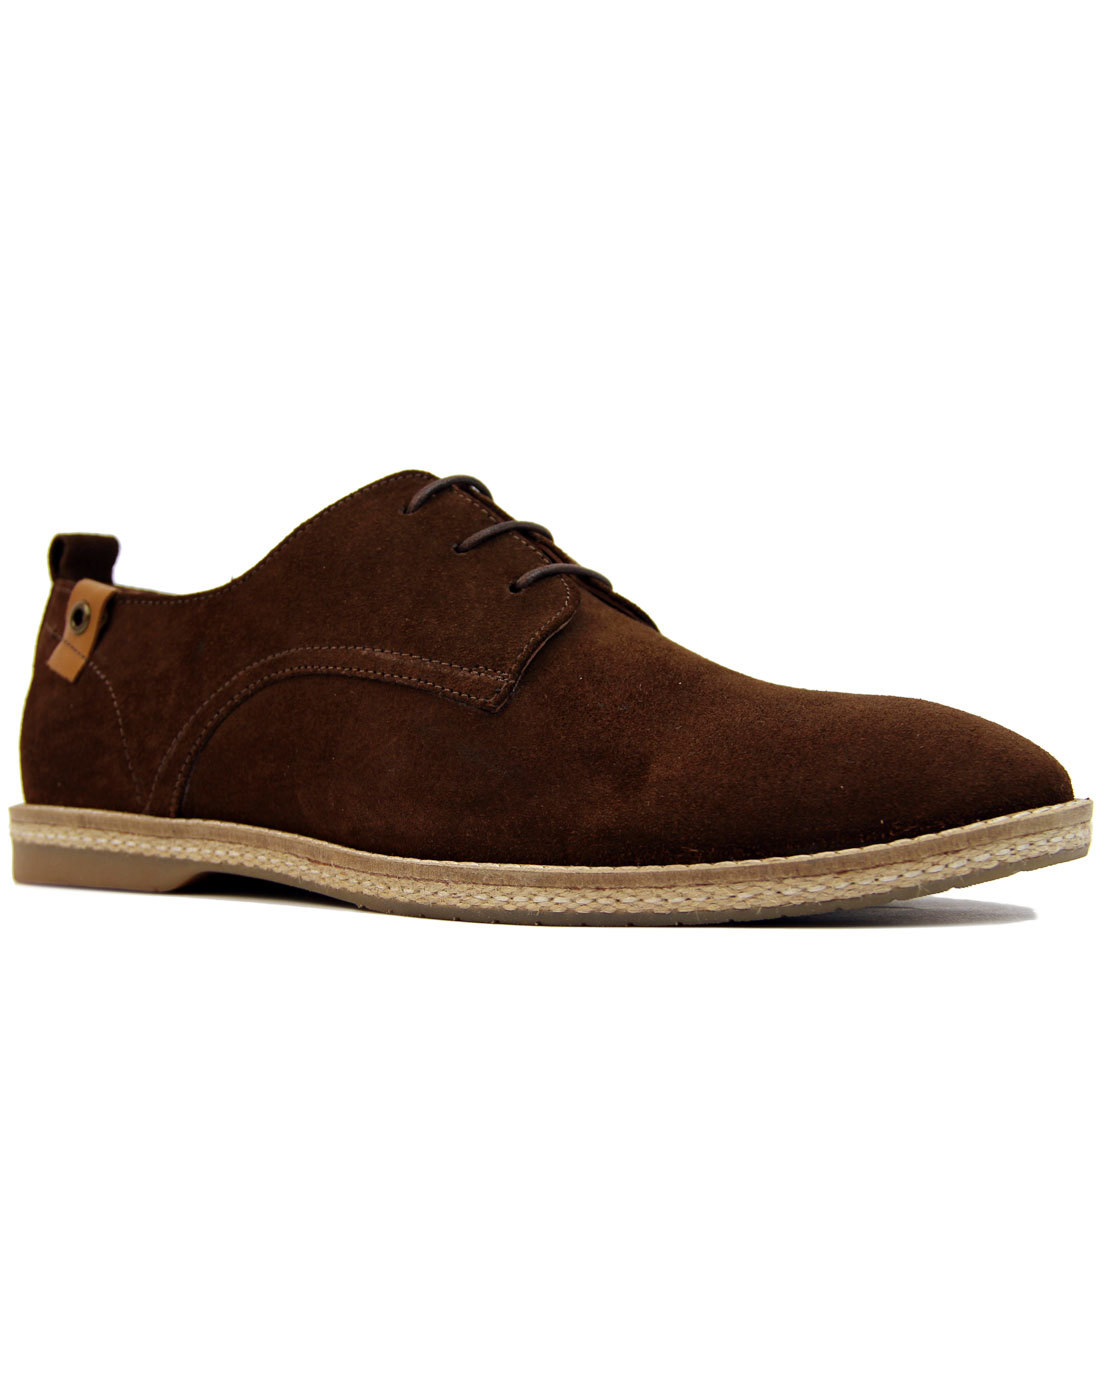 Ramsey PAOLO VANDINI Retro Mod Suede Derby Shoes B